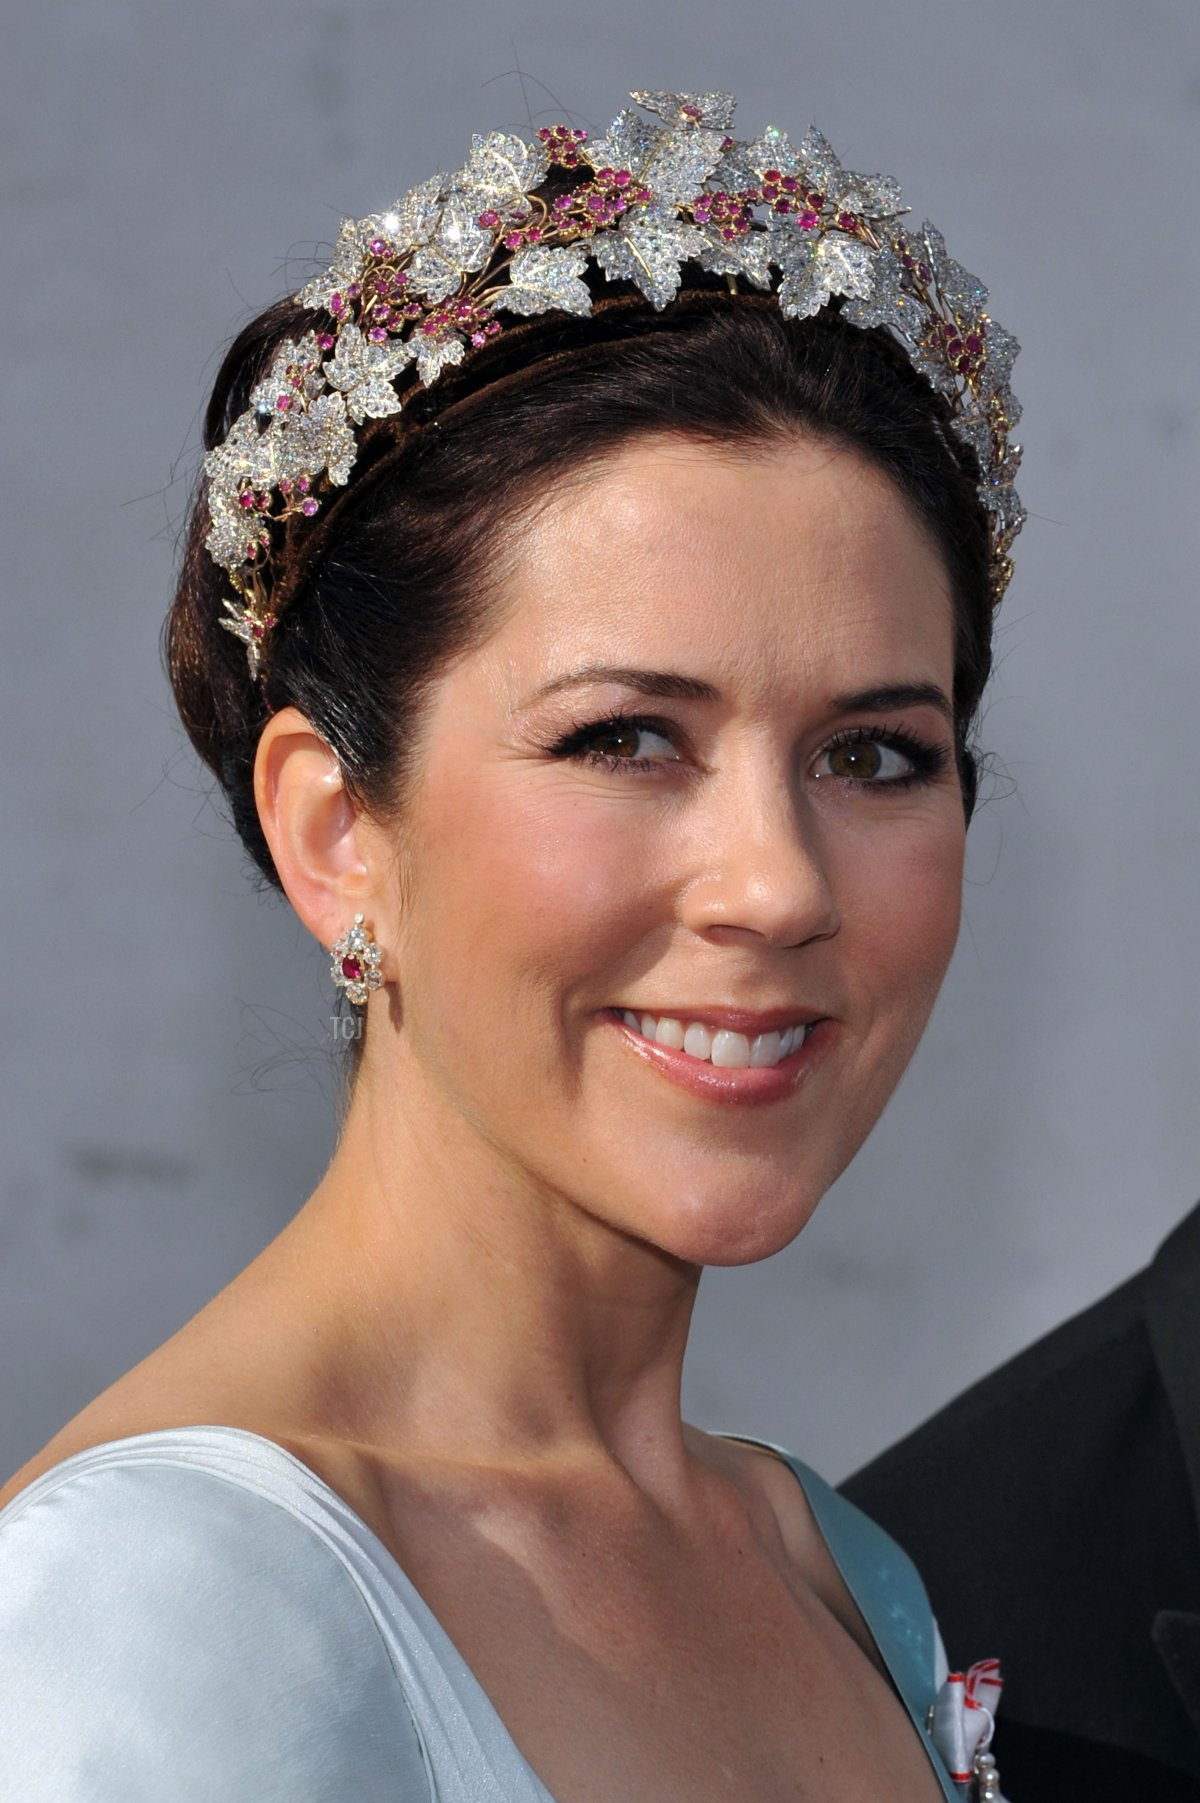 Crown Princess Mary of Denmark depart after they attended the wedding between Prince Joachim of Denmark and Princess Marie of Denmark, Countess of Monpezat, at the Mogeltonder church on May 24, 2008 in Mogeltonder, Denmark